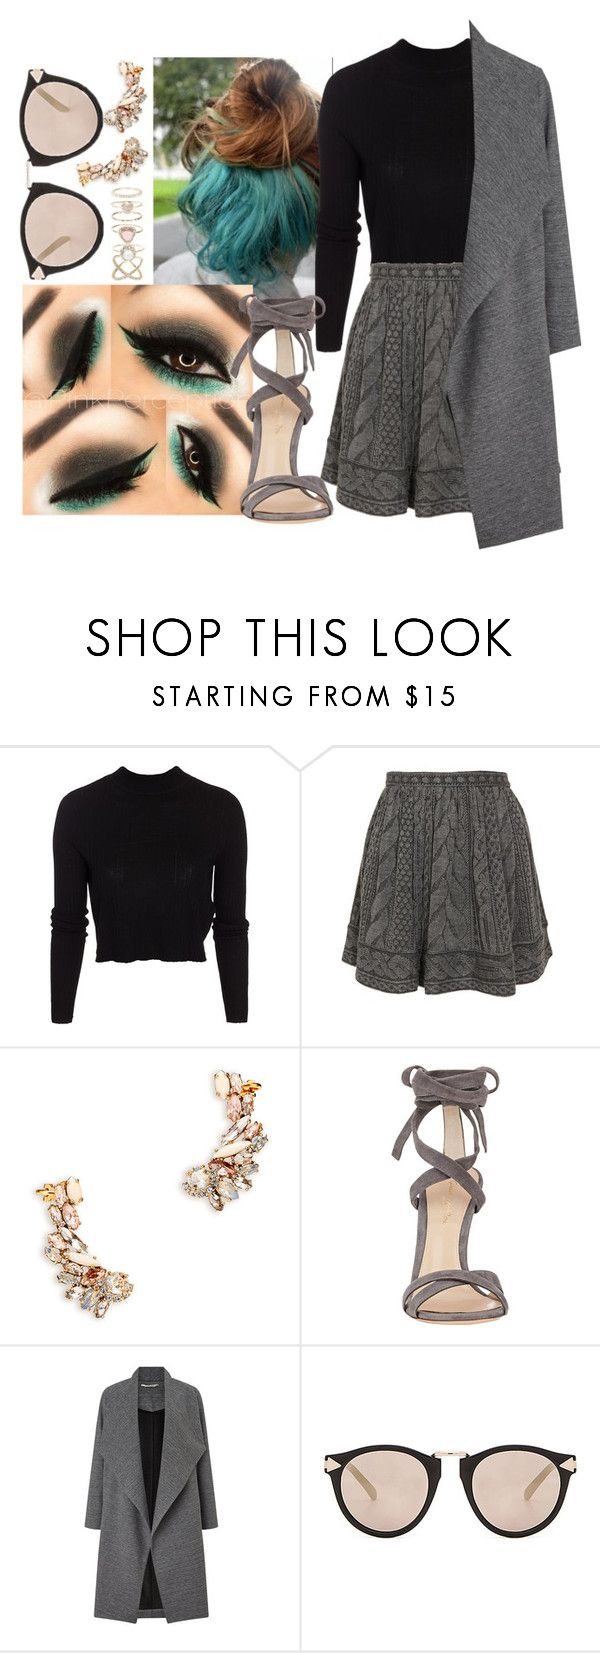 """""""Go to the cinema with friends"""" by lol-girl-fun ❤ liked on Polyvore featuring ONLY, Opening Ceremony, Gianvito Rossi, Miss Selfridge, Karen Walker, Accessorize, women's clothing, women, female and woman"""